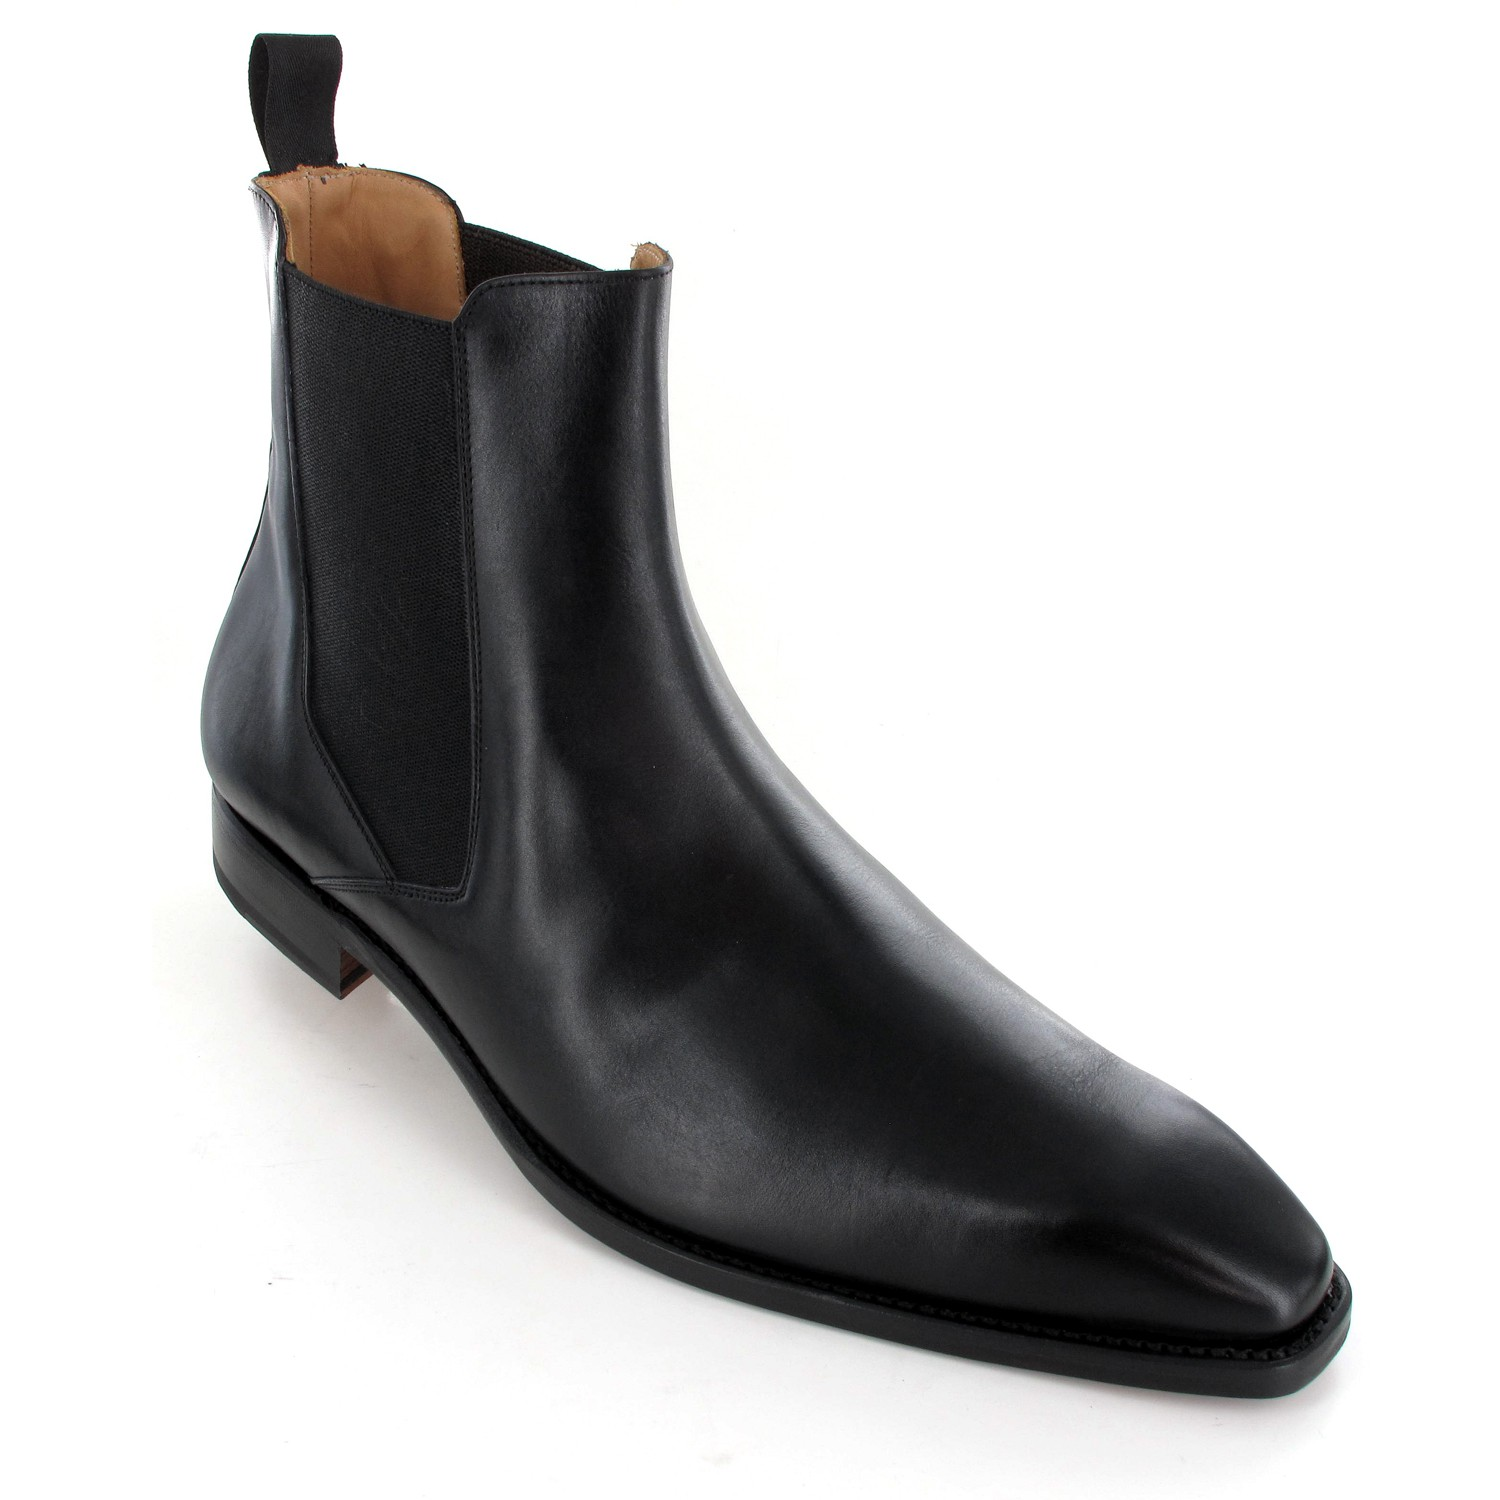 Chzussure Bottines Boots Chelsea Homme Chaussures Ville De Luxe